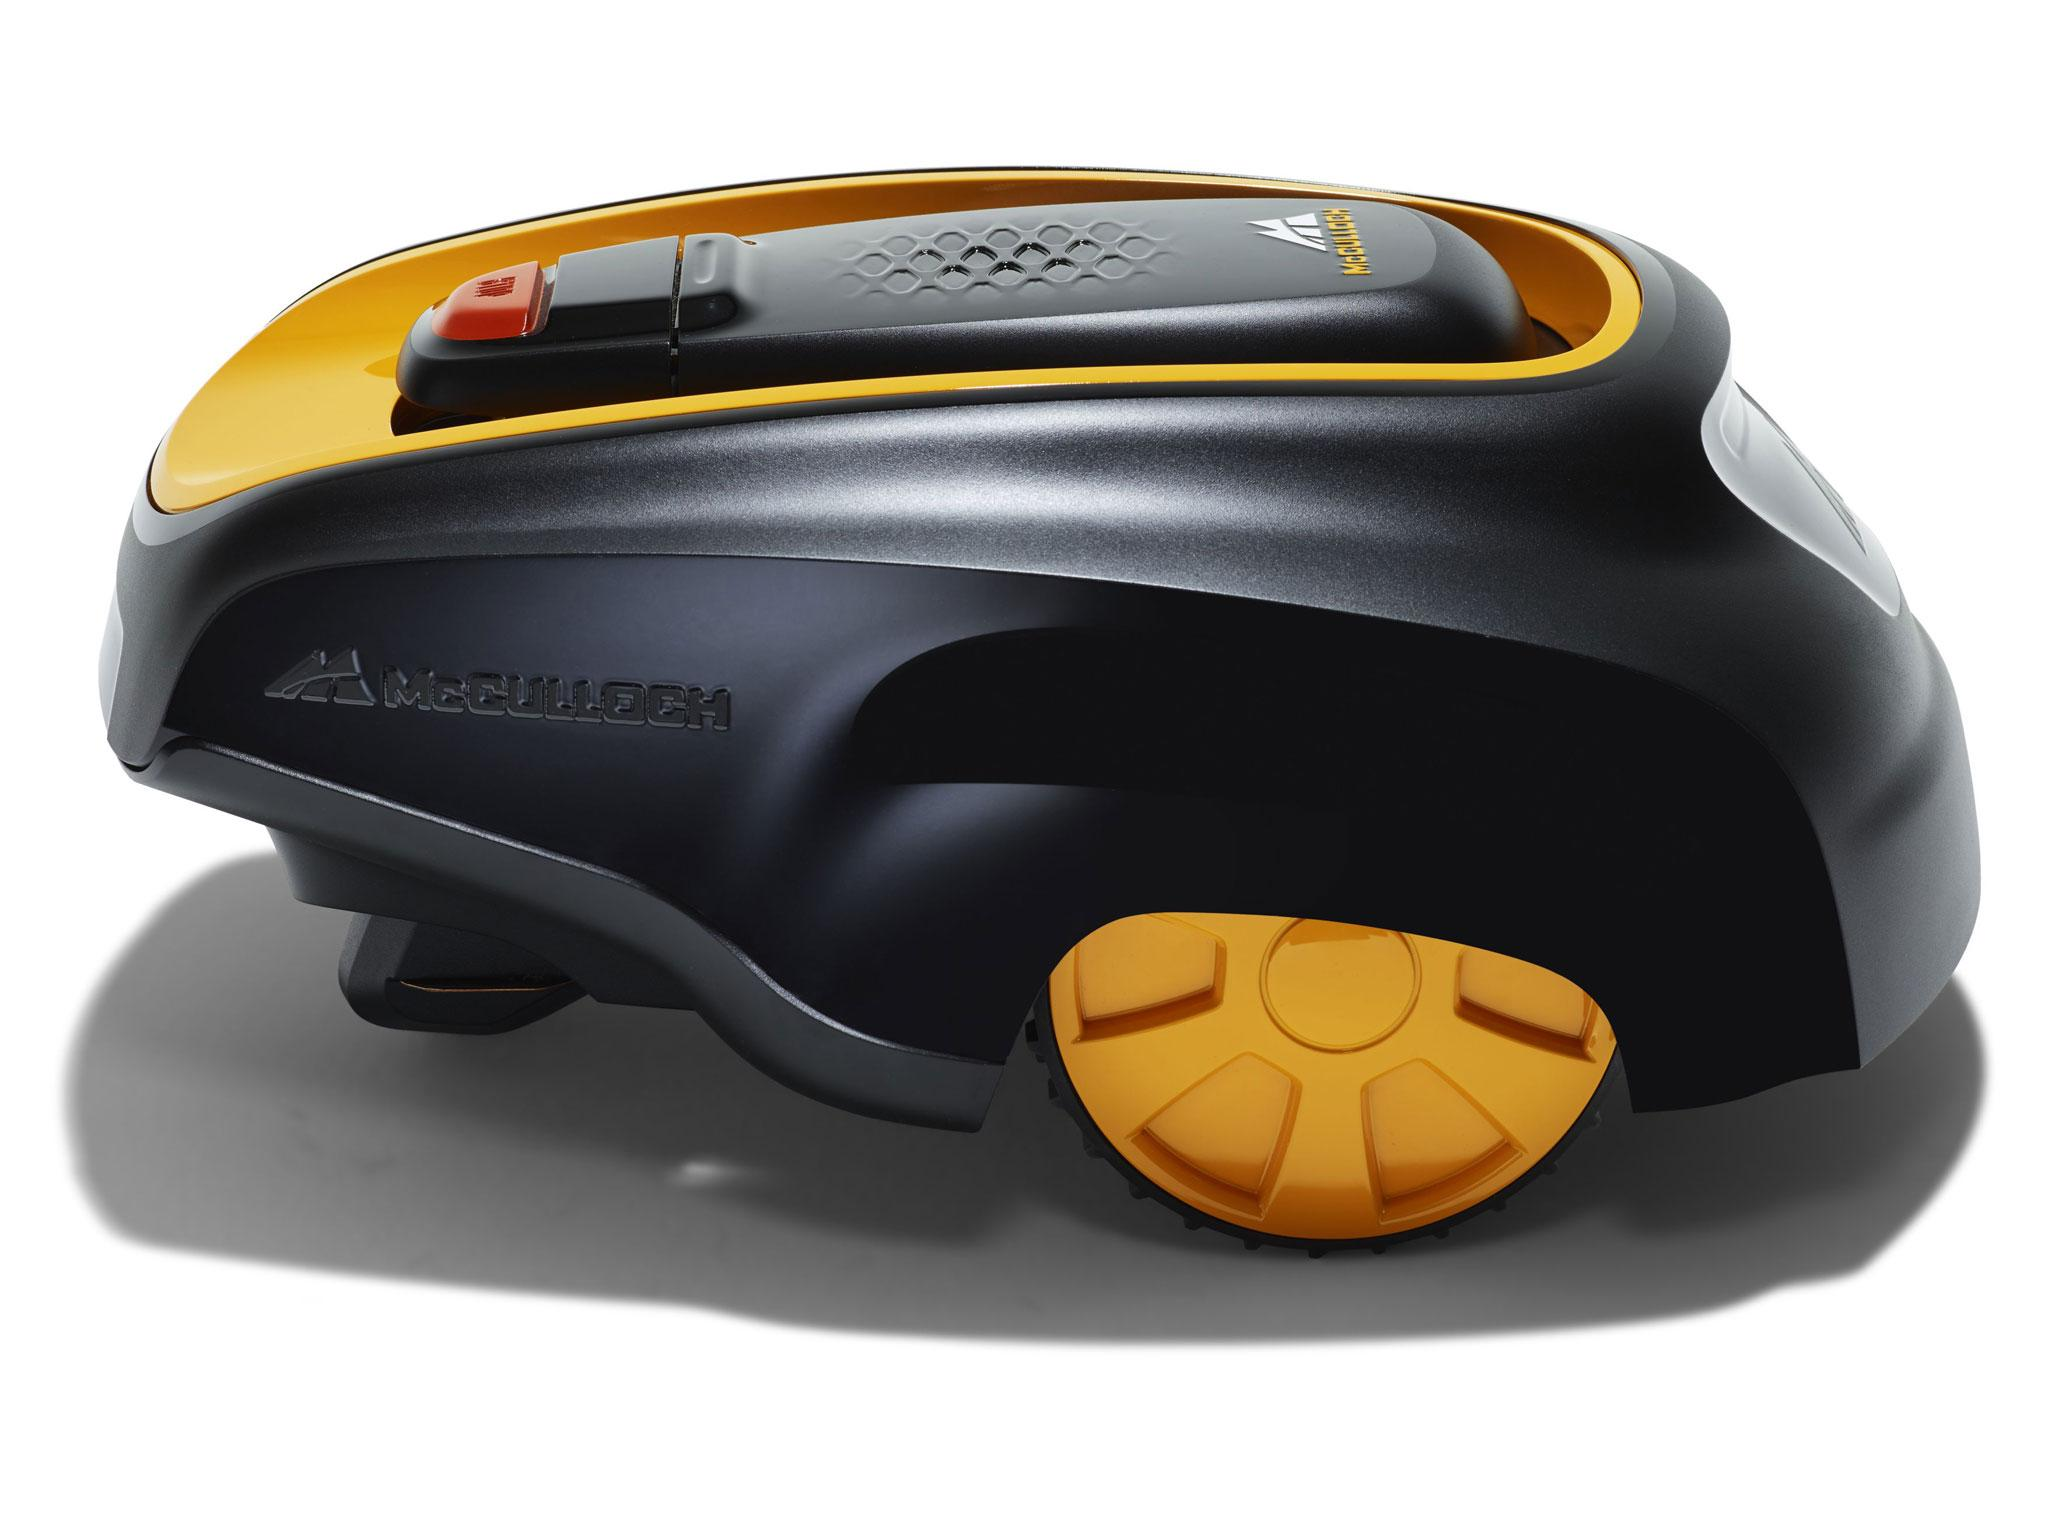 9 best robot lawnmowers the independent brand new for this year it can cut up to a 25 per cent gradient with ease this robo mower can also cope with bigger gardens better than the cheaper models fandeluxe Choice Image